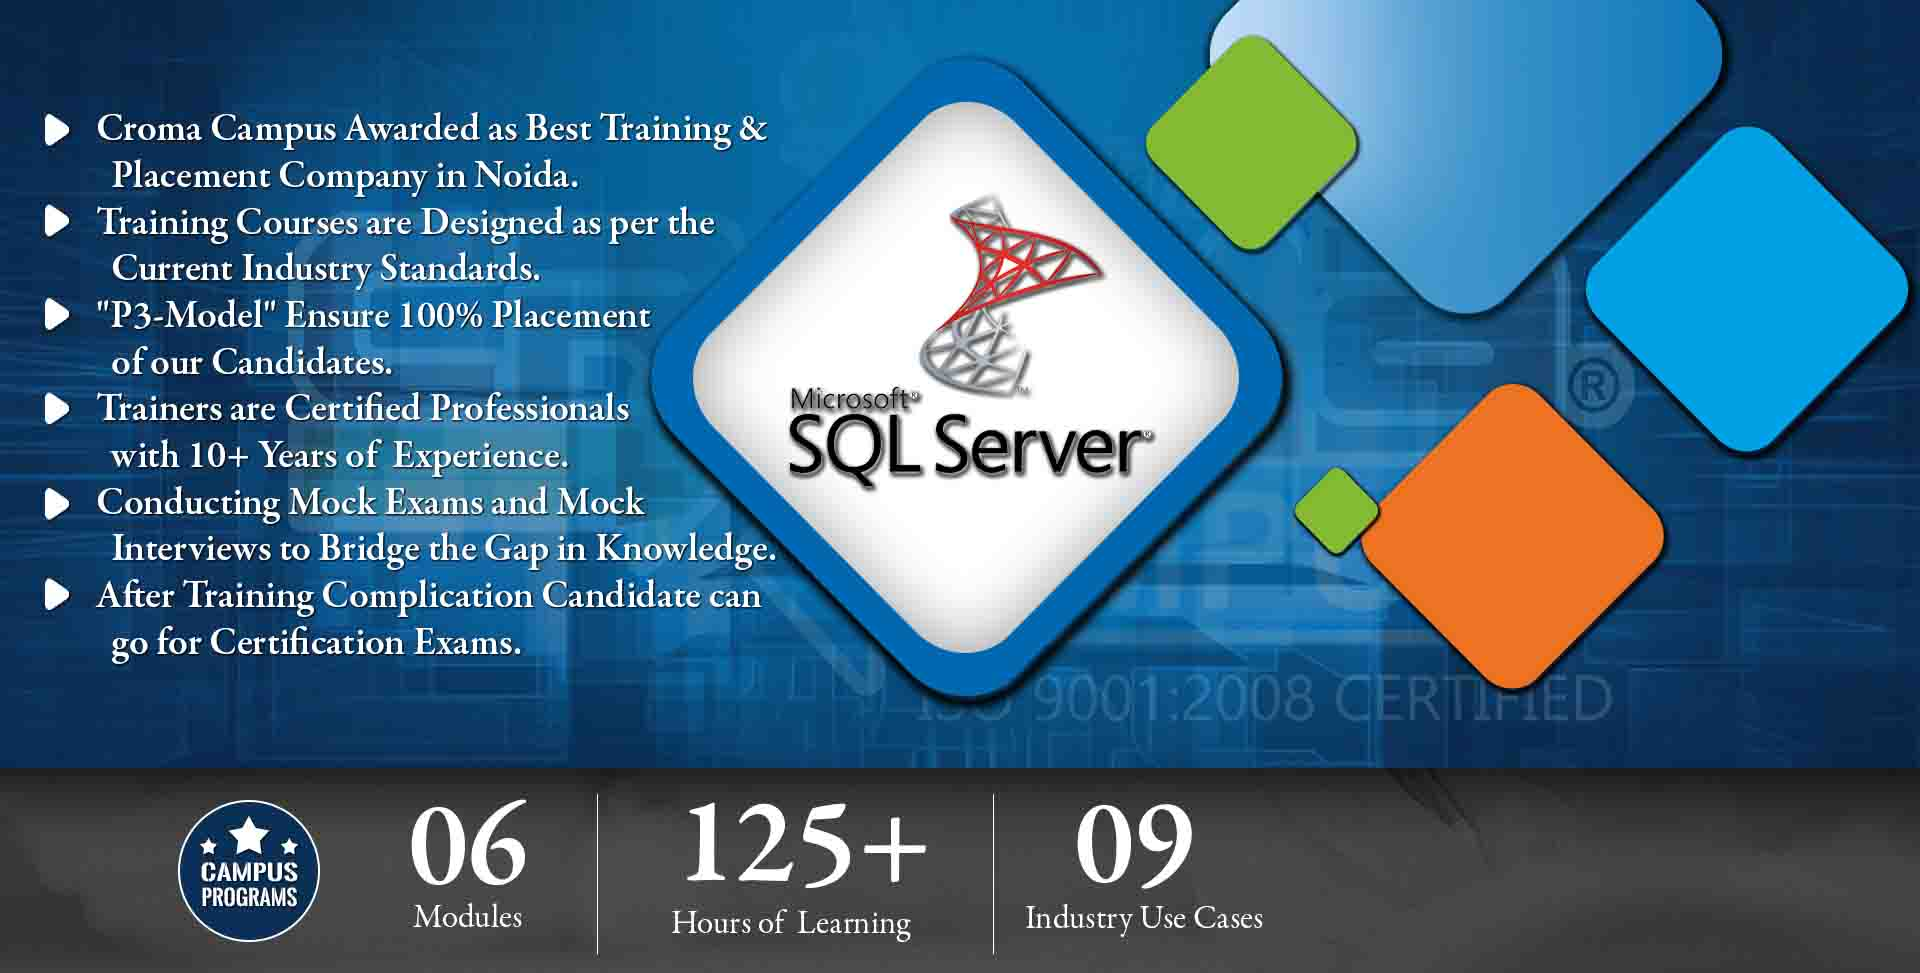 SQL Server Training in Delhi NCR- Croma Campus